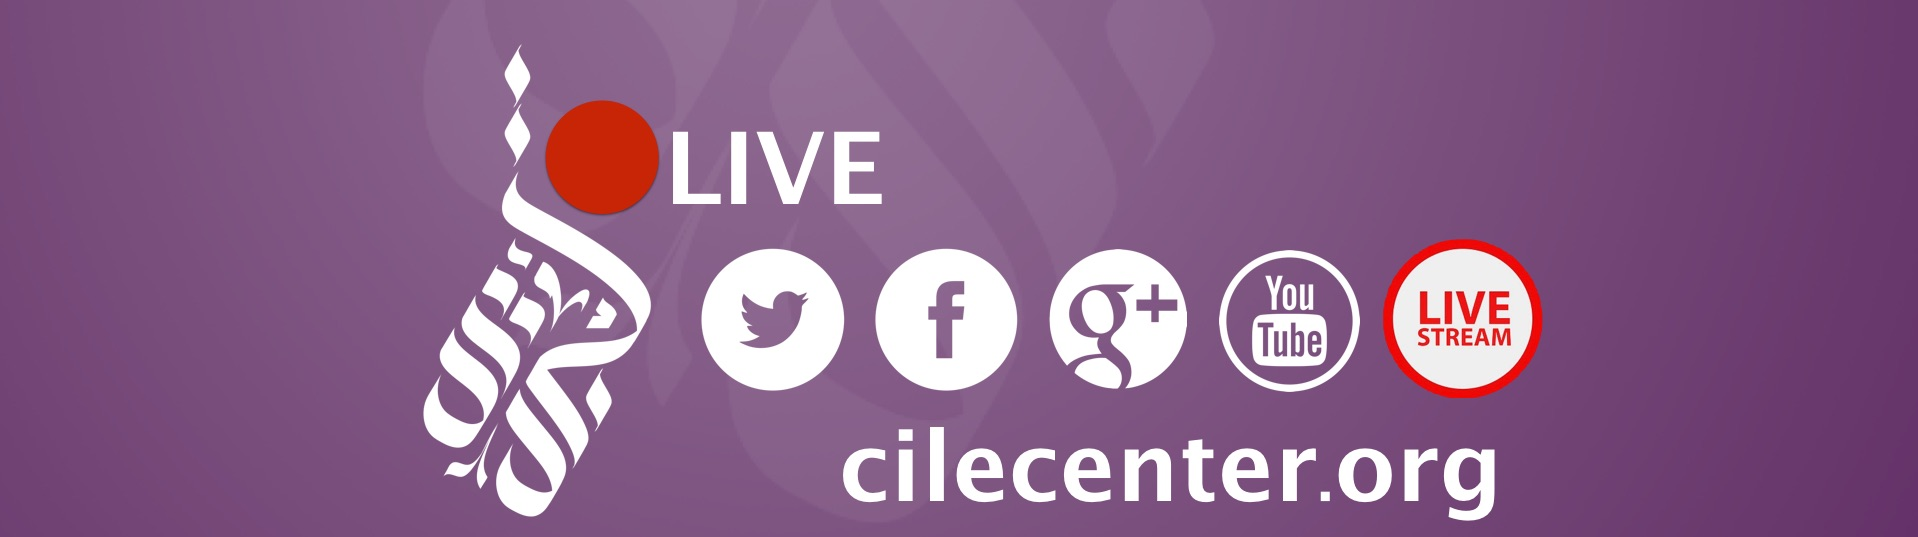 Follow #CILE2019 on Social Media and Watch the Livestream